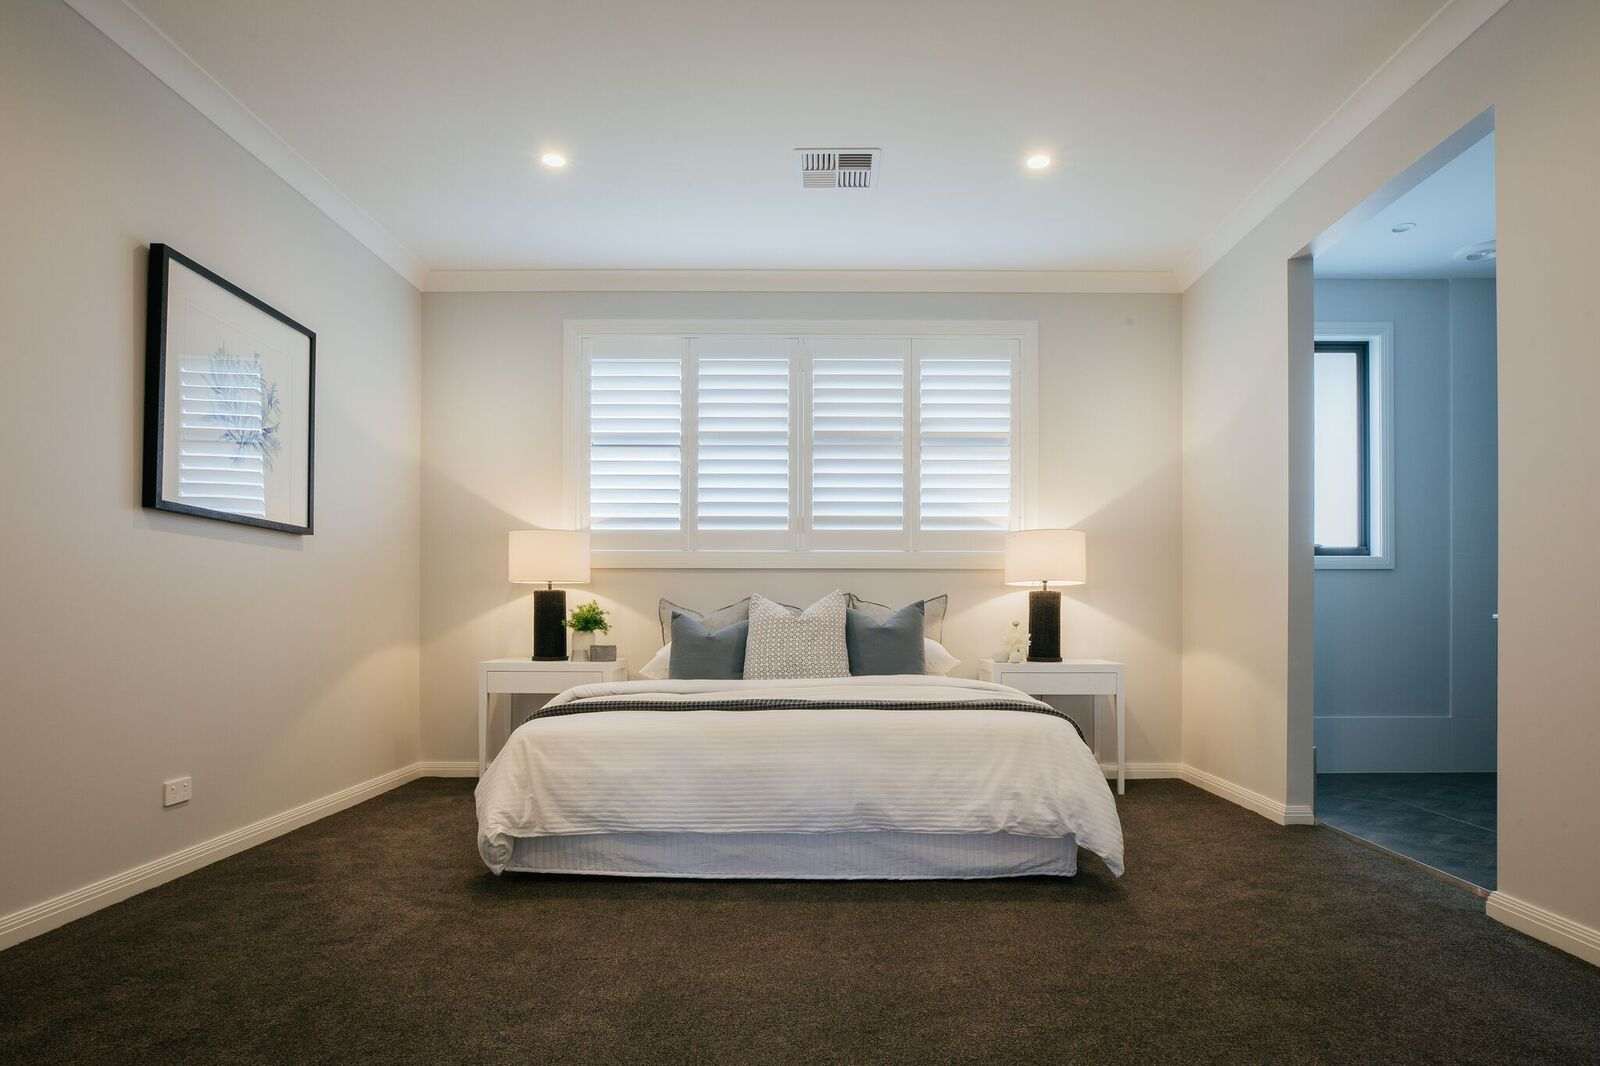 13 - Architectural Drafting Master Bedroom.jpg